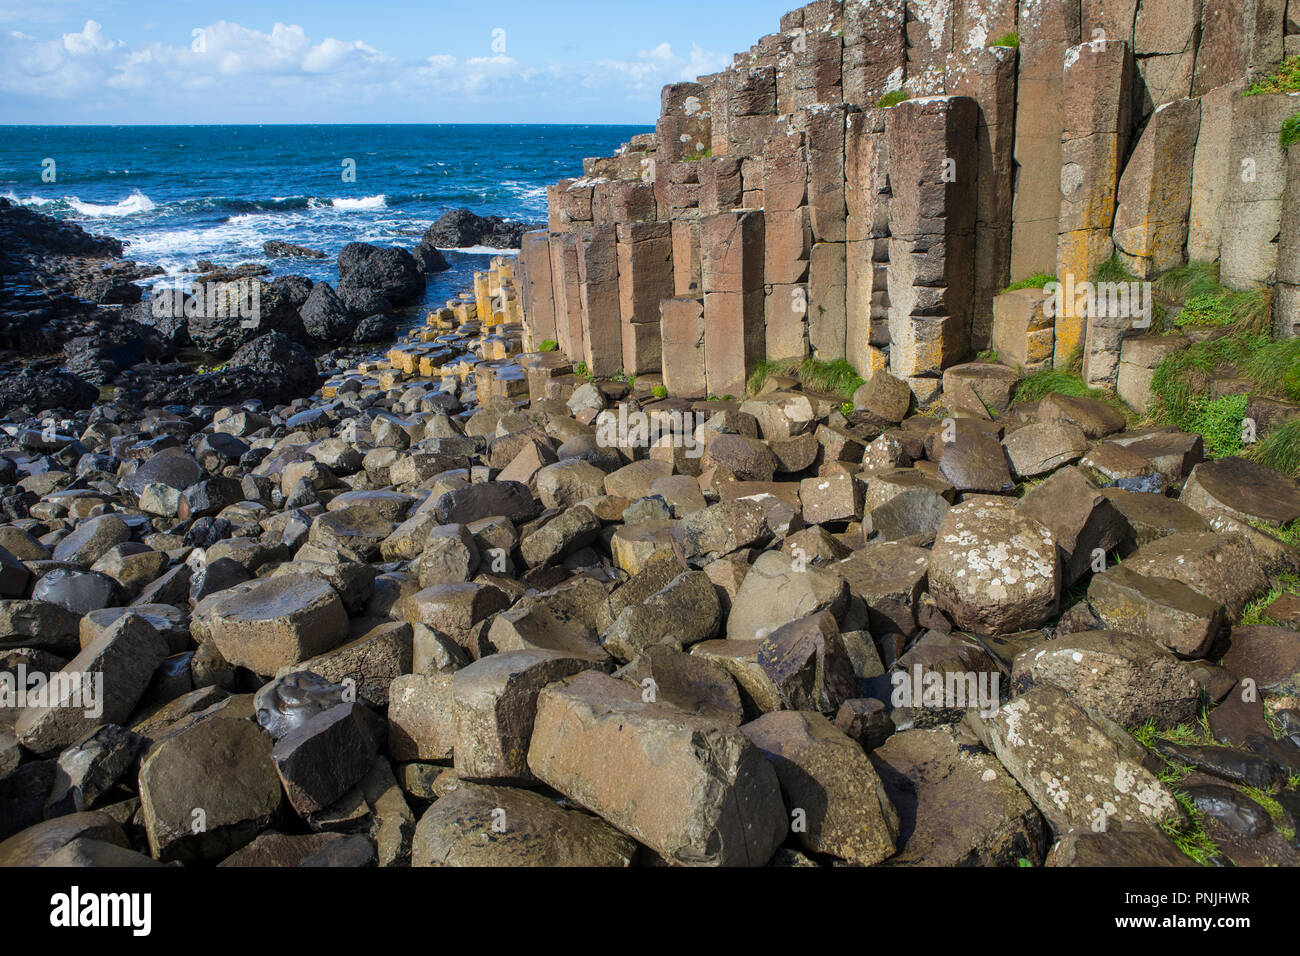 The magnificent Giant's Causeway in Northern Ireland. - Stock Image